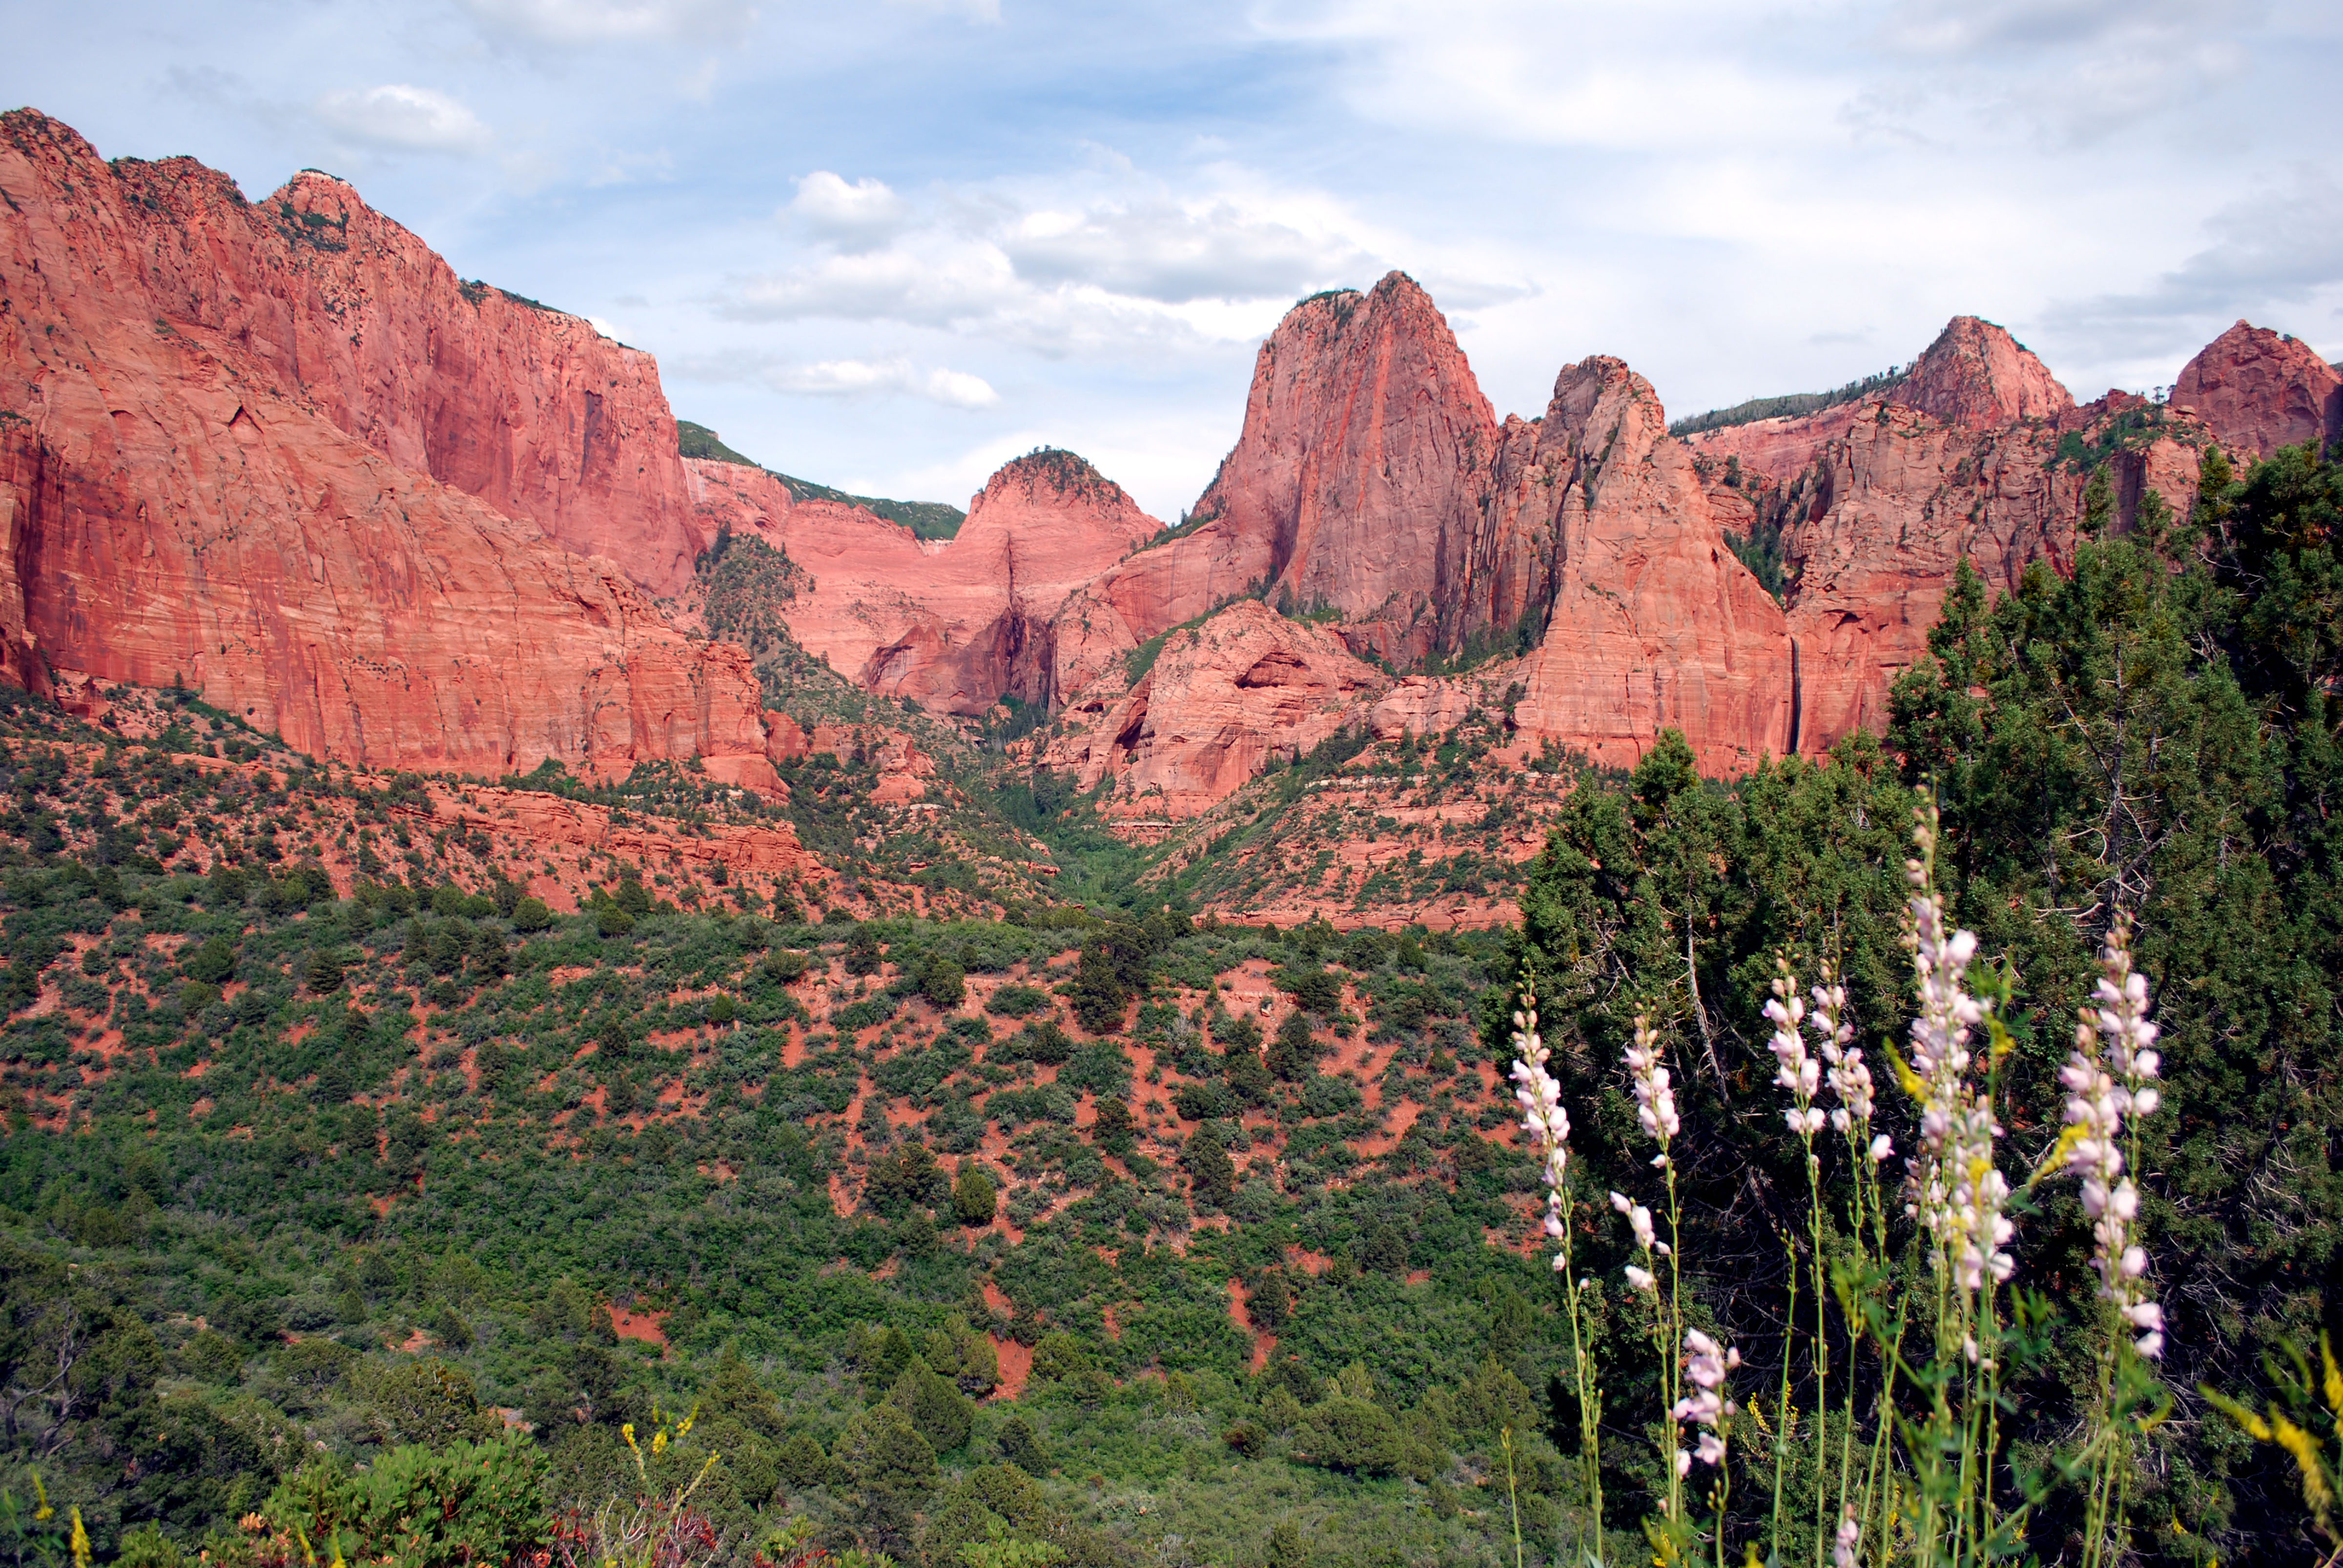 Just off I-15 south of Cedar City, the Kolob section of Zion National Park offers a lovely sidetrip into remarkable red sandstone canyons with towering cliffs and pinnacles. The district also has several hiking trails.